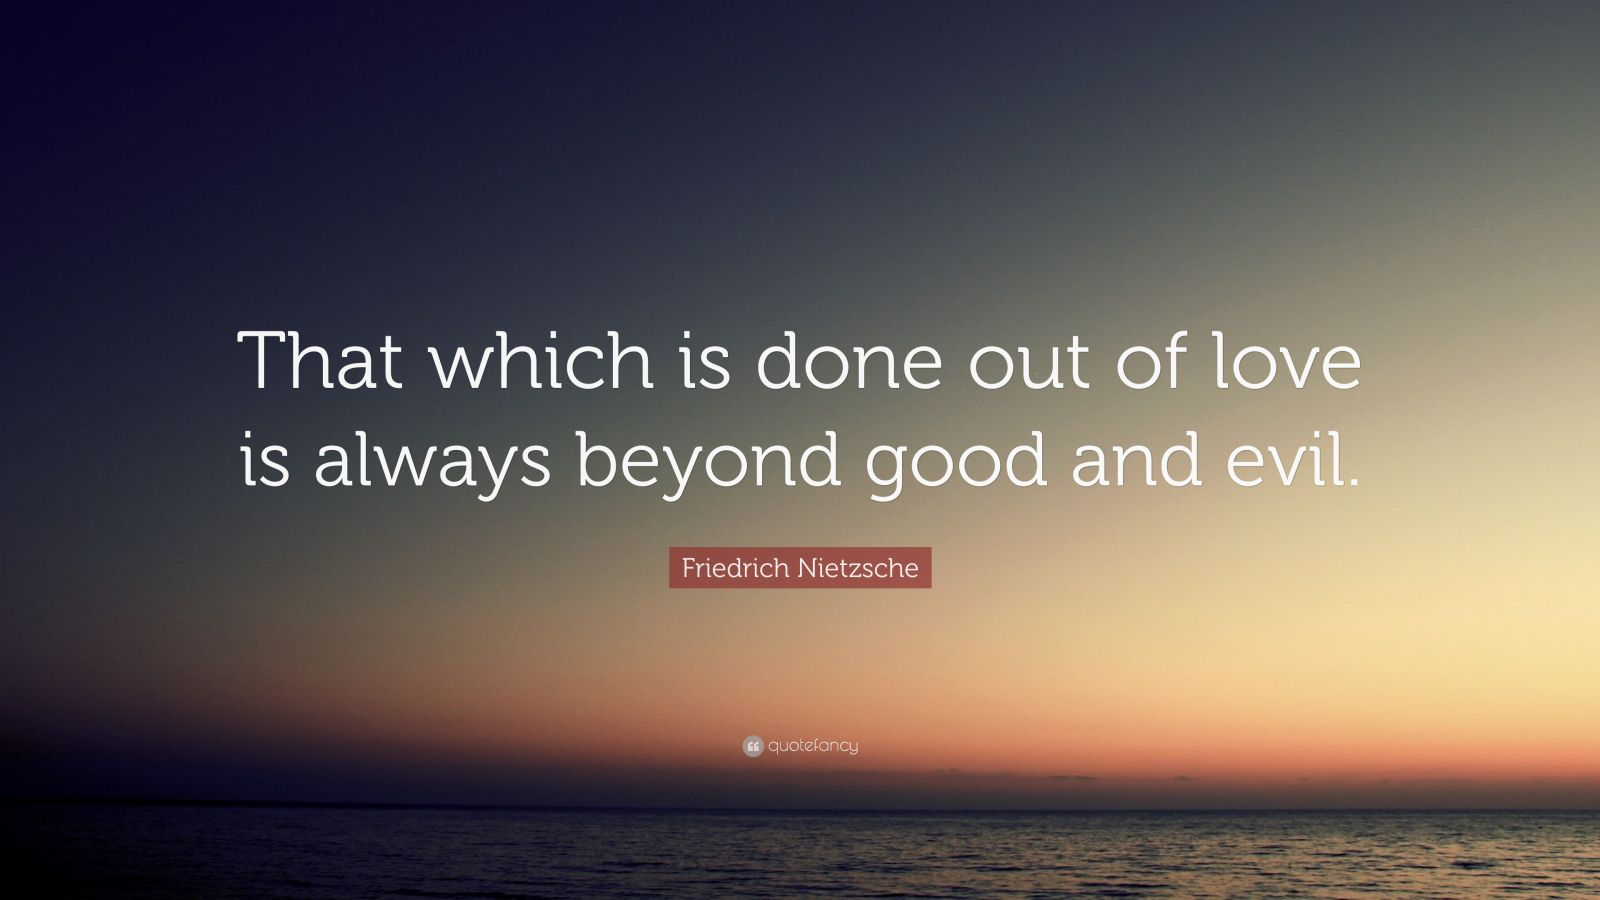 friedrich nietzsche quote �that which is done out of love